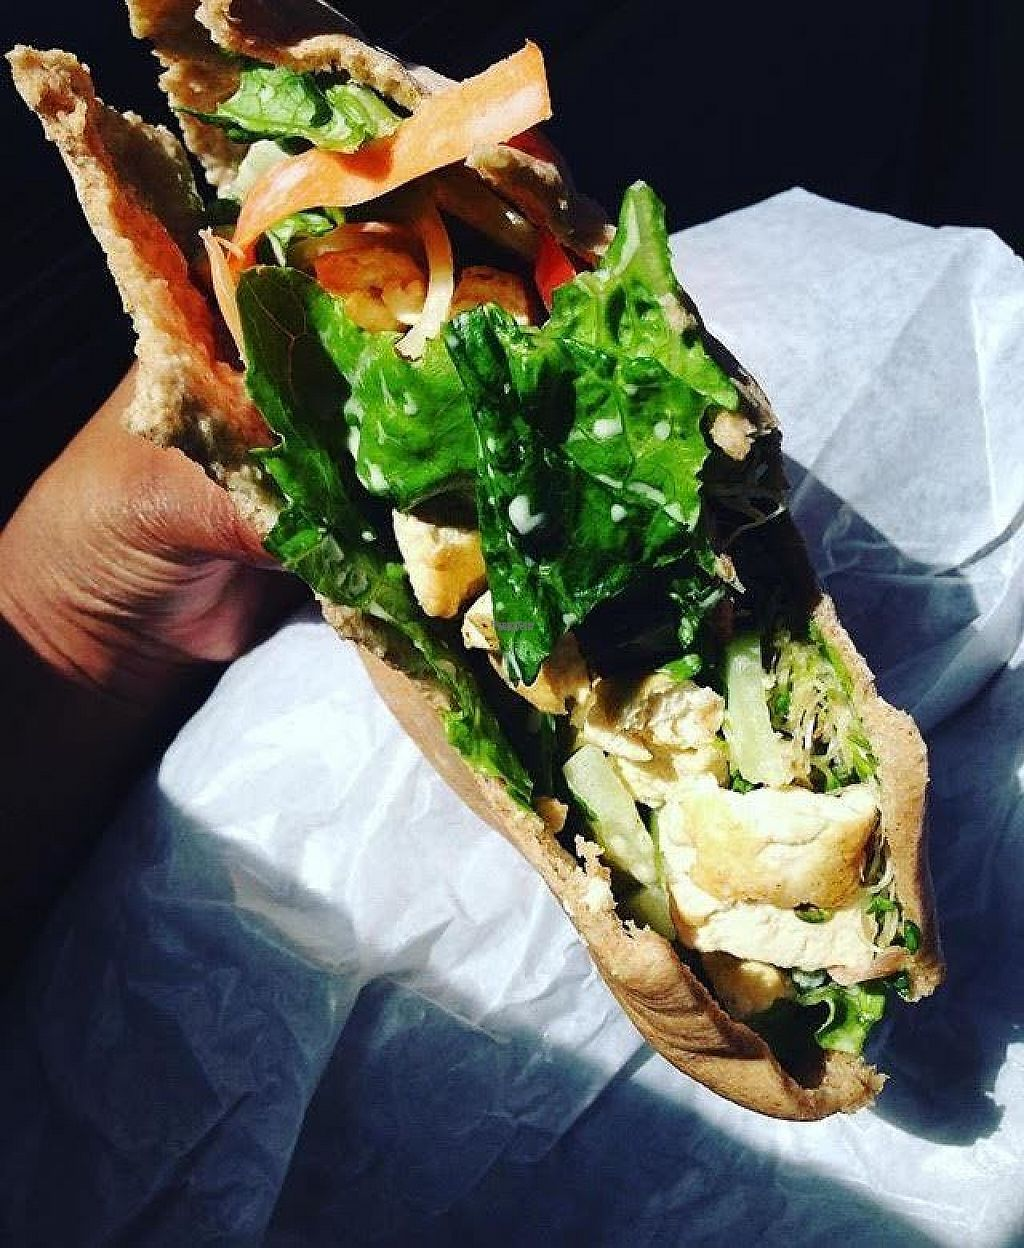 """Photo of Eco Eats  by <a href=""""/members/profile/theveganfattie"""">theveganfattie</a> <br/>Tofu pita wrap <br/> March 29, 2017  - <a href='/contact/abuse/image/44759/242488'>Report</a>"""